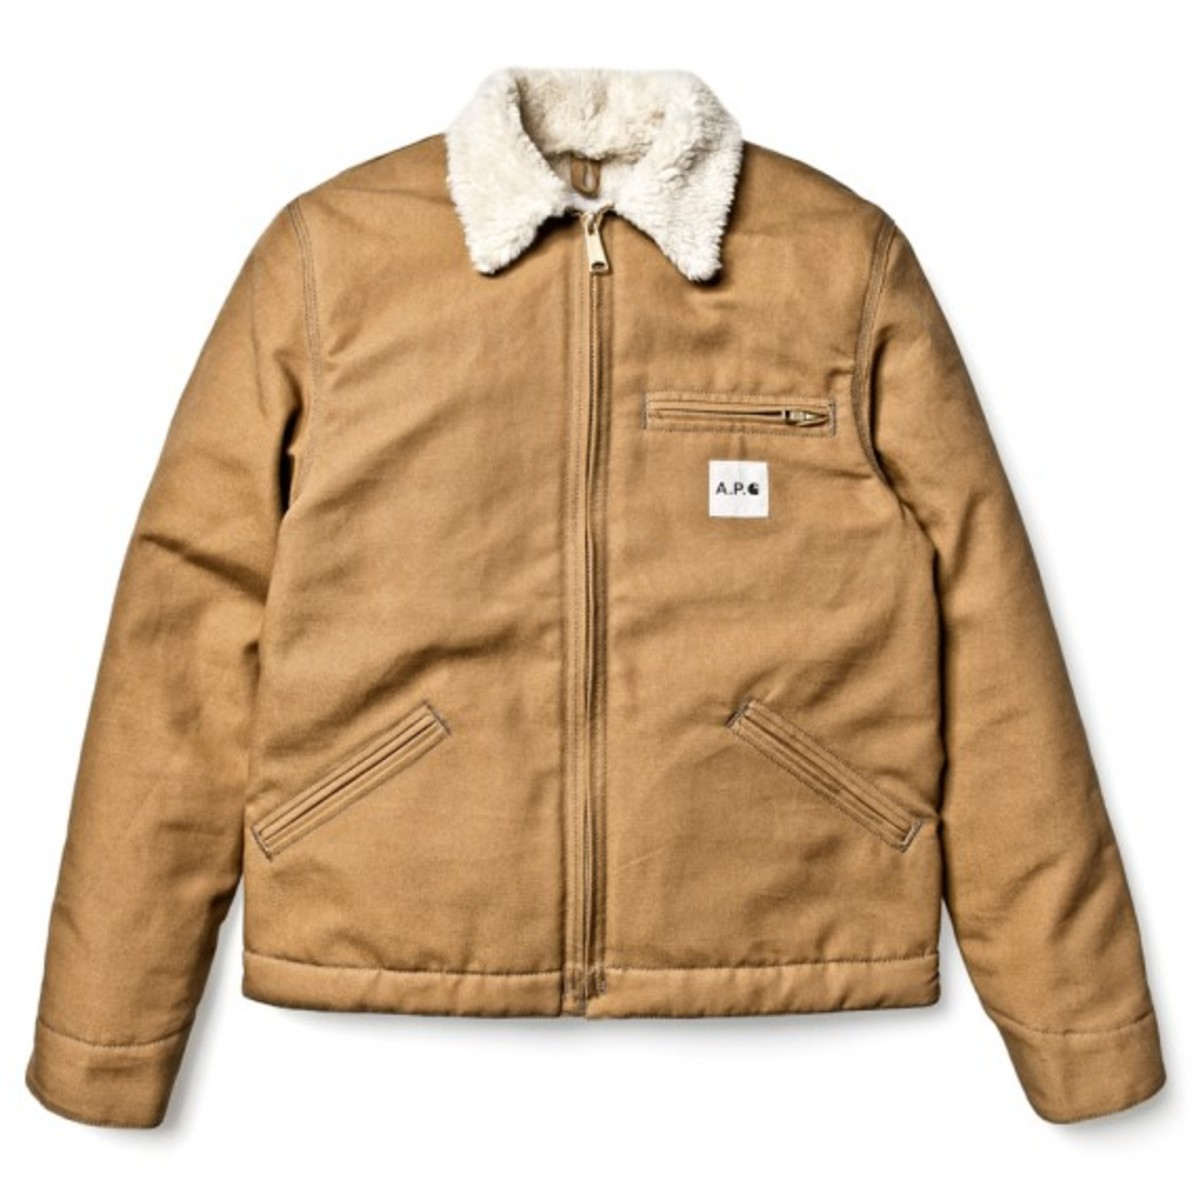 carhartt-apc-detroit-revisited-jacket-01